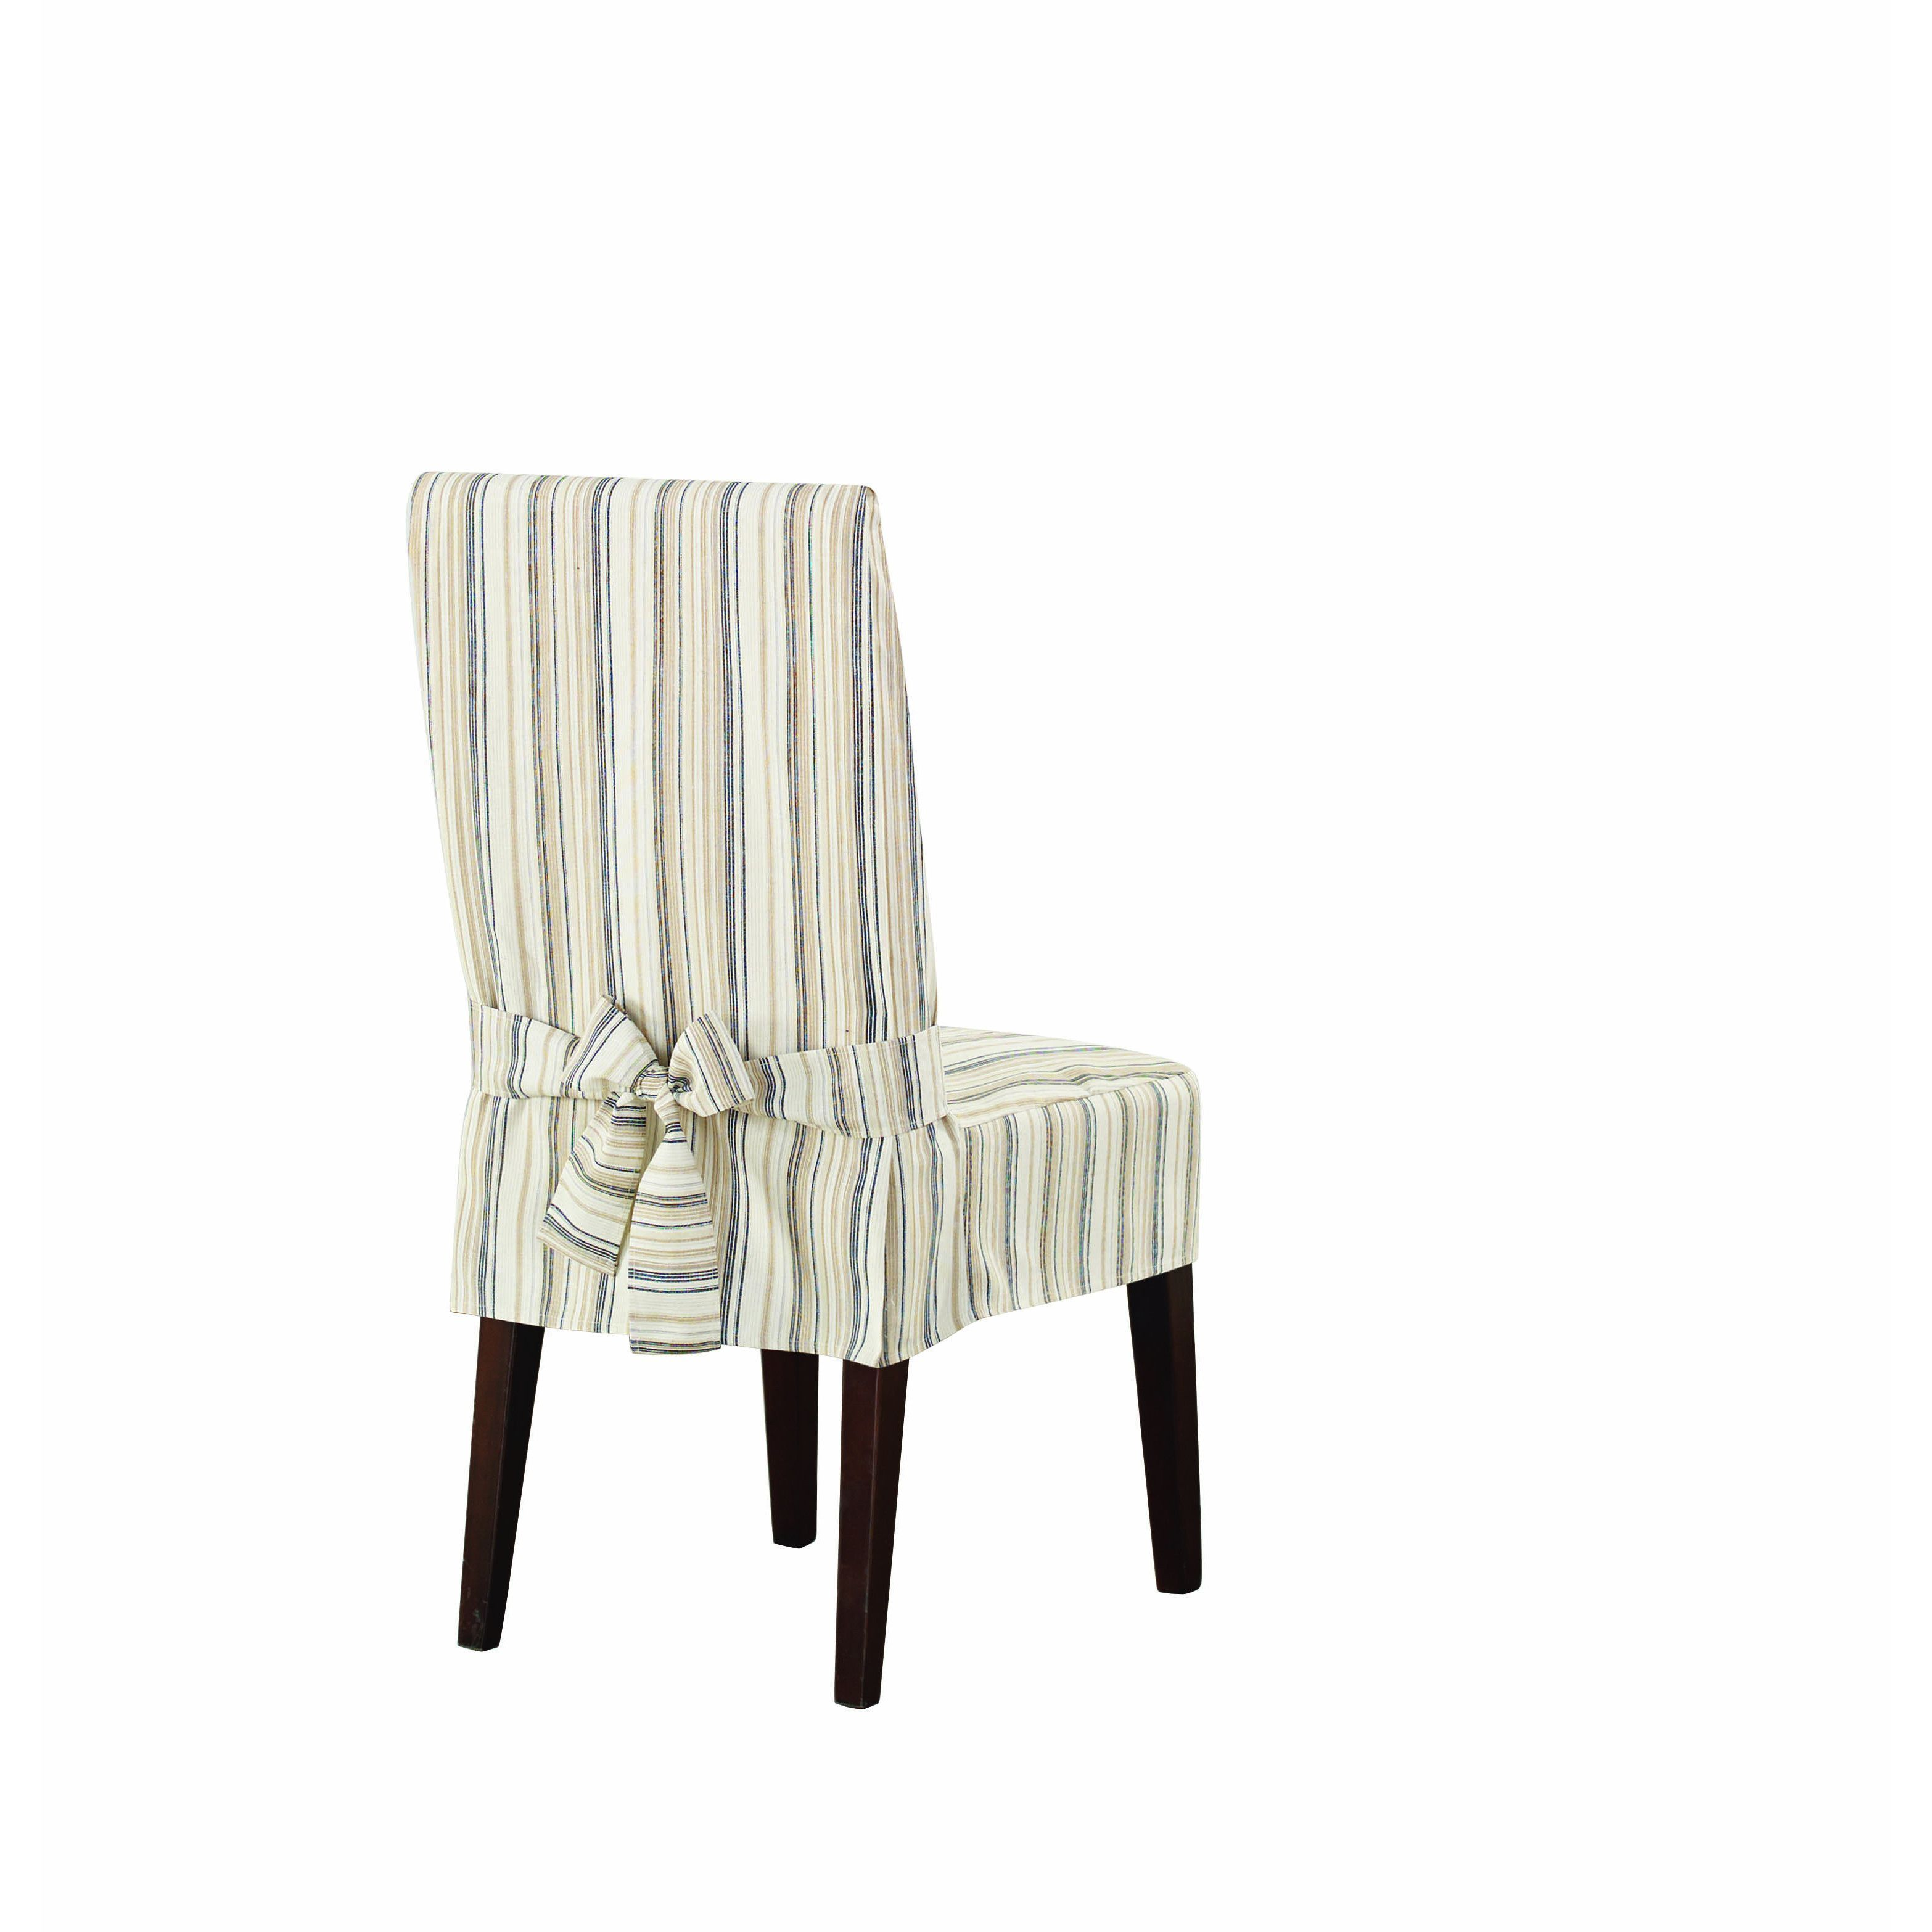 Overstock Com Online Shopping Bedding Furniture Electronics Jewelry Clothing More Slipcovers For Chairs Dining Room Chair Covers Dining Room Chairs